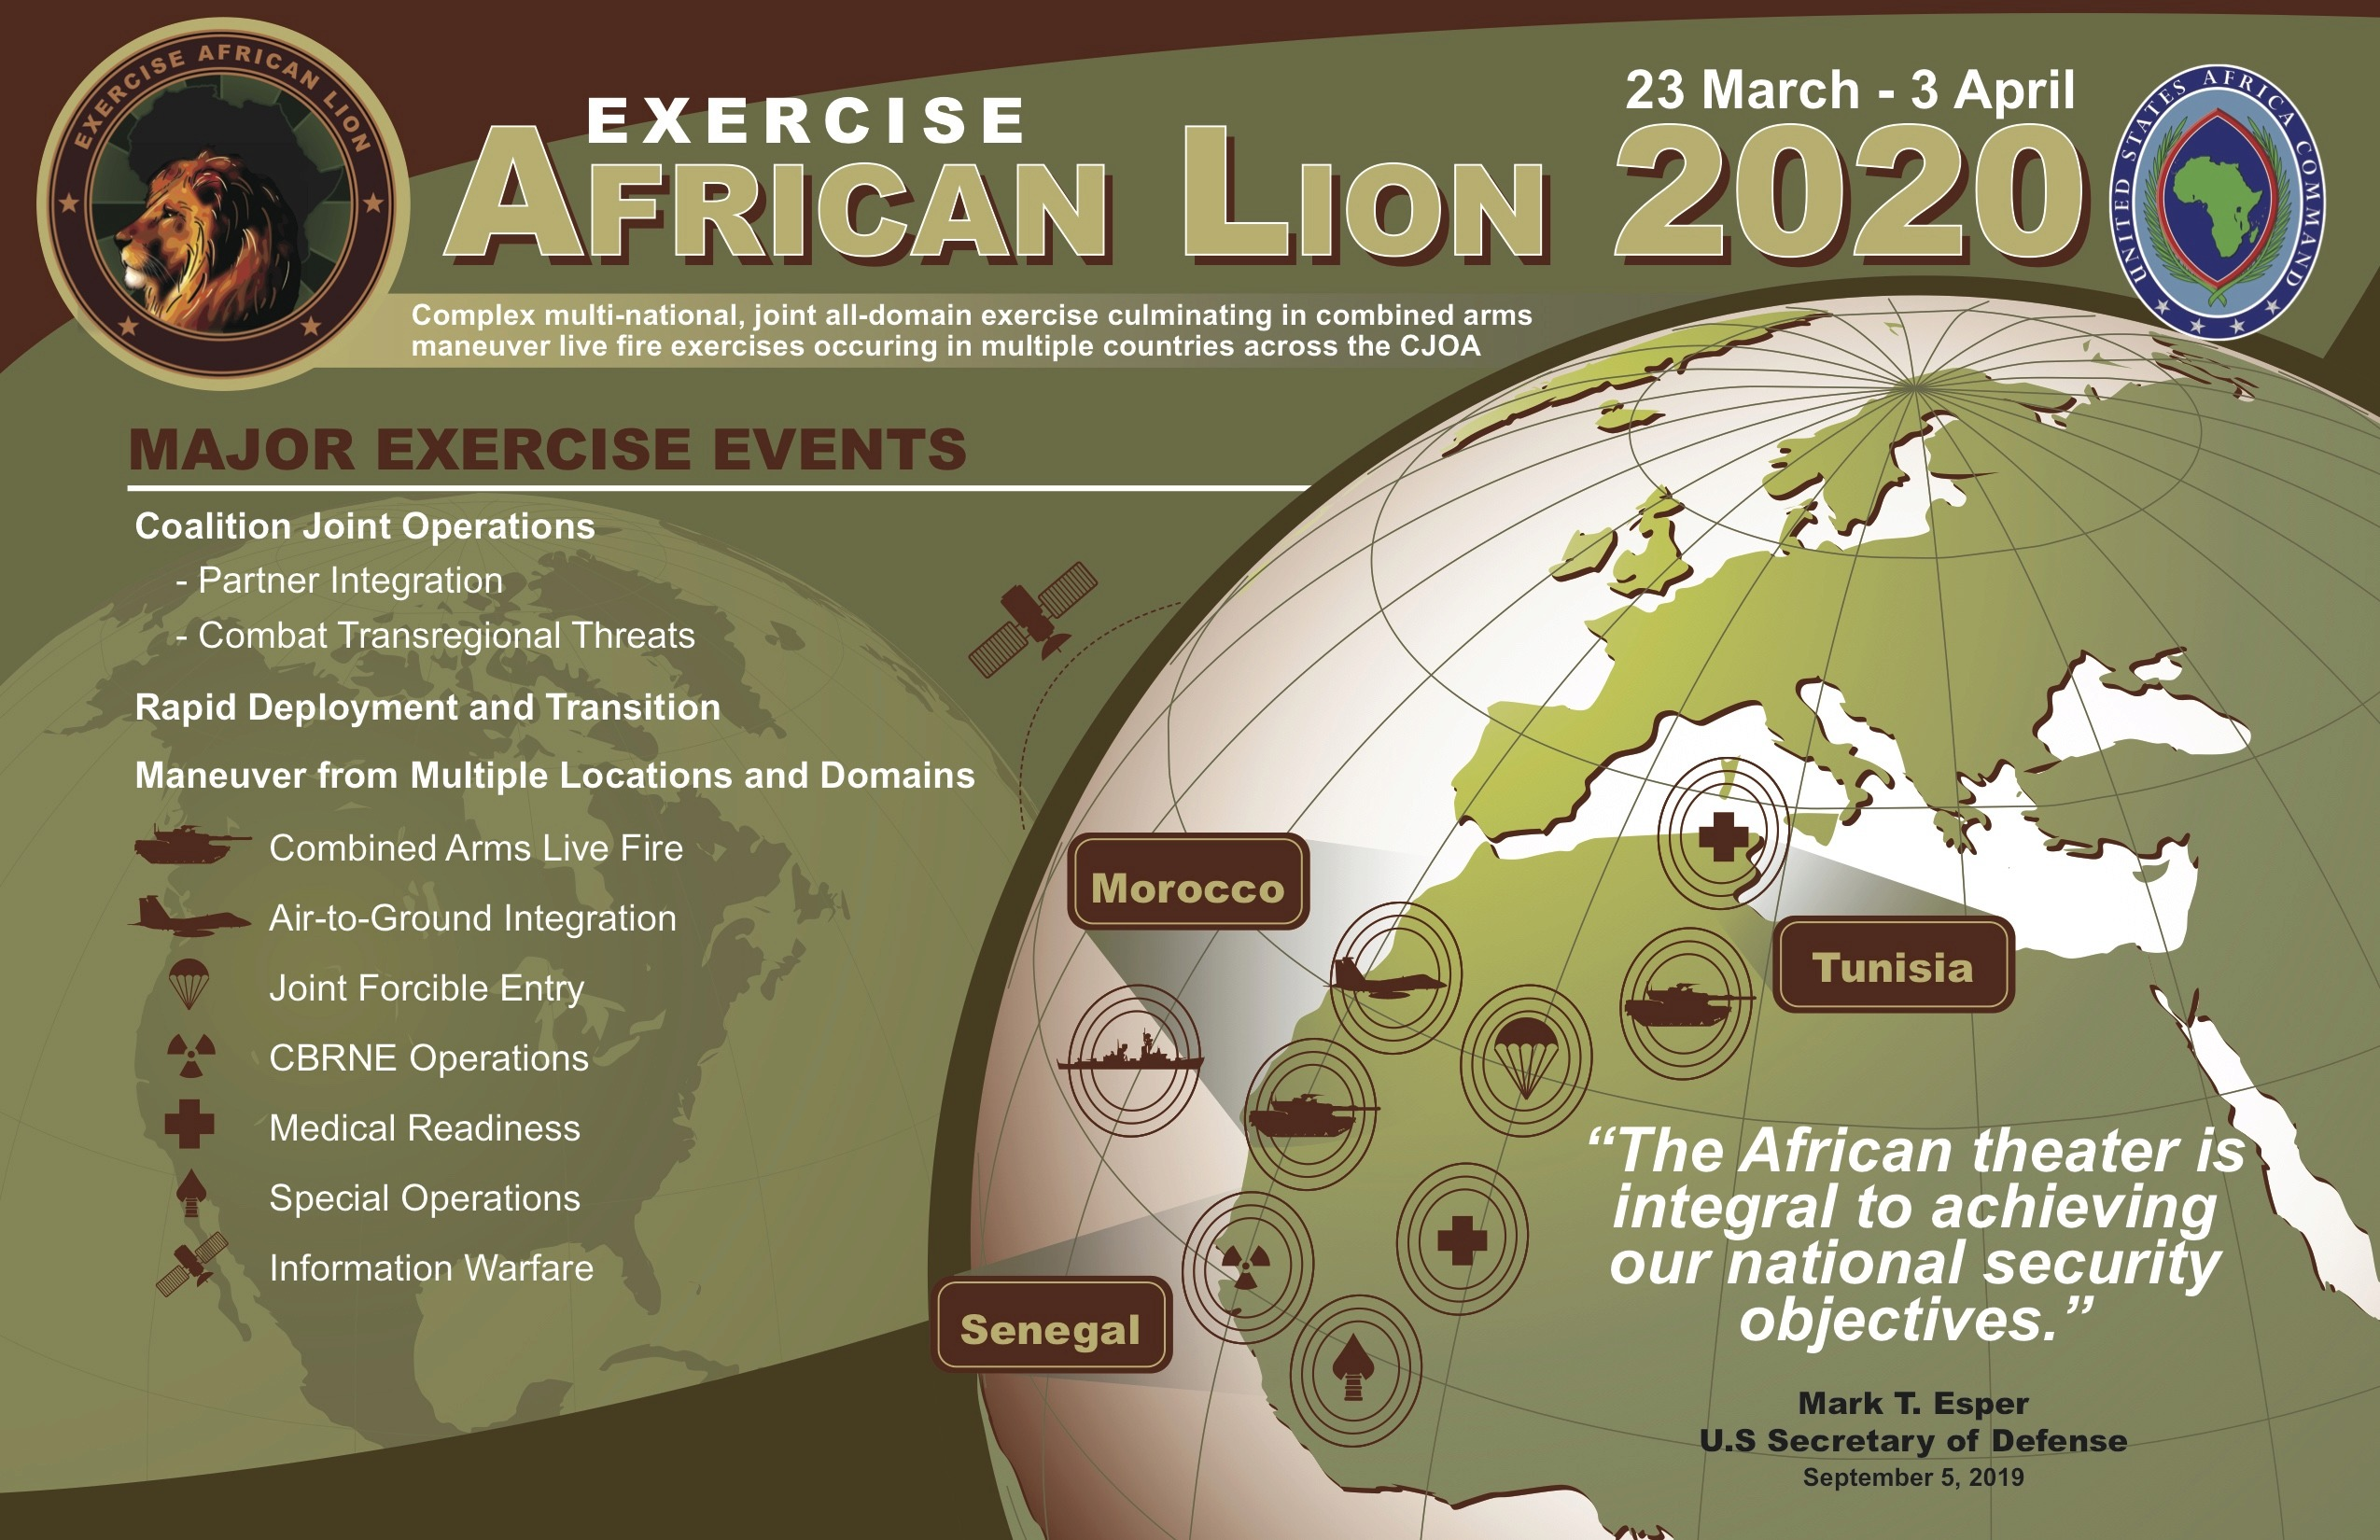 Exercice African Lion 2020 8d0c2a10